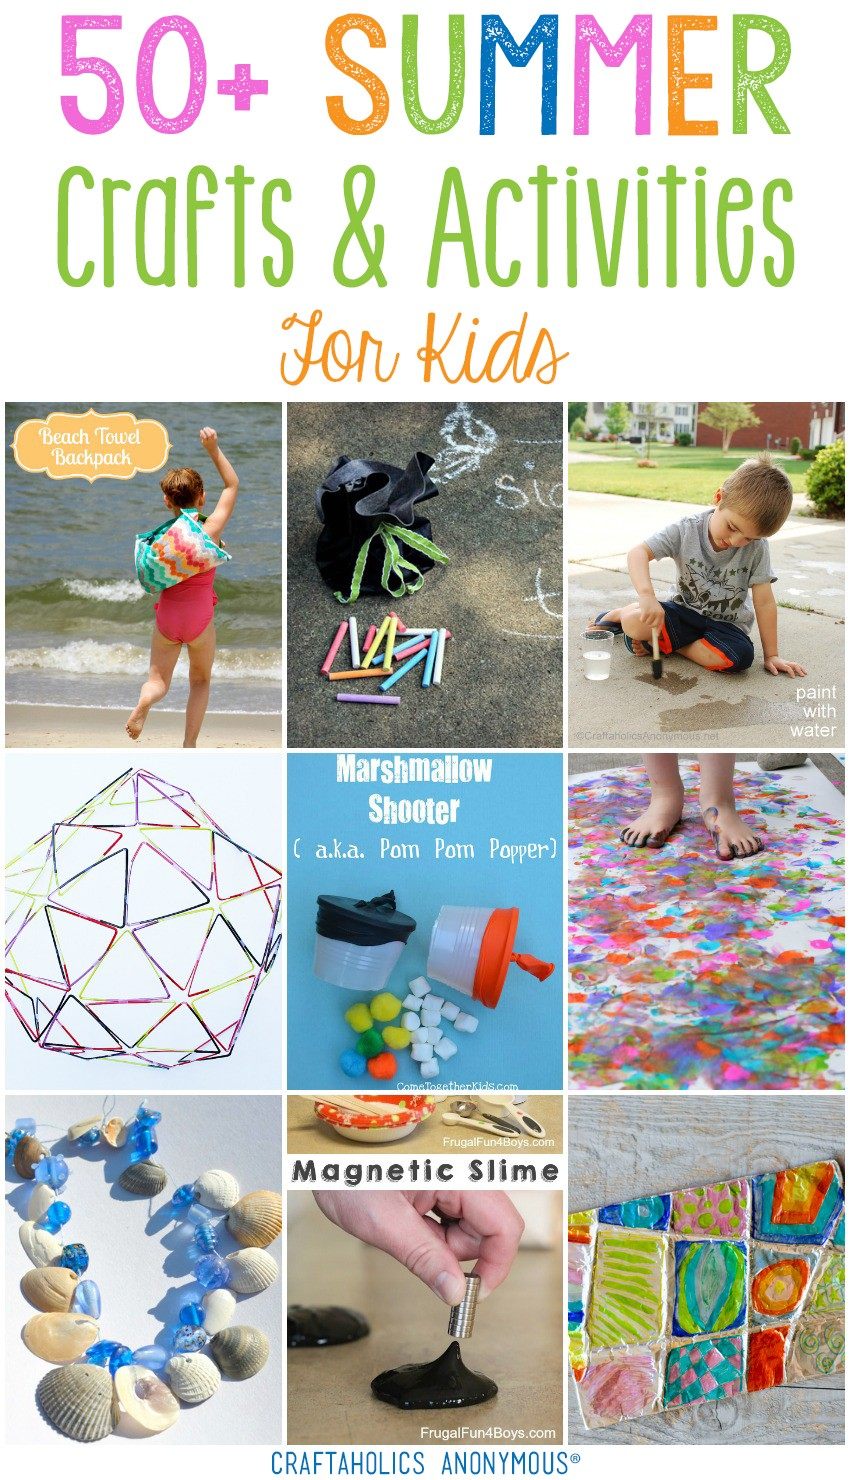 50+ Summer Crafts for Kids | Craftaholics Anonymous®